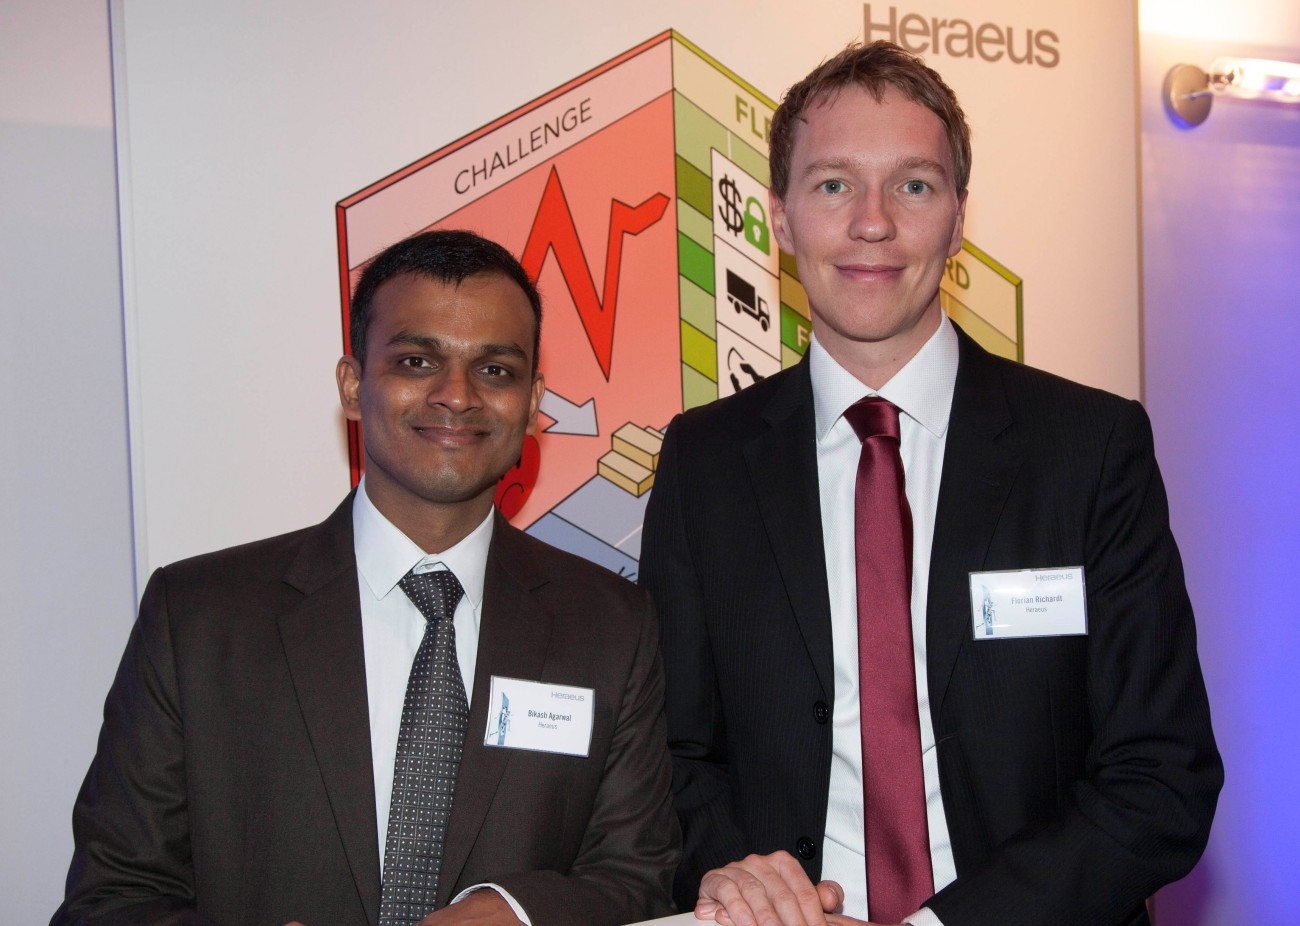 Bikash Agarwal and Florian Richardt from Heraeus Metal Management